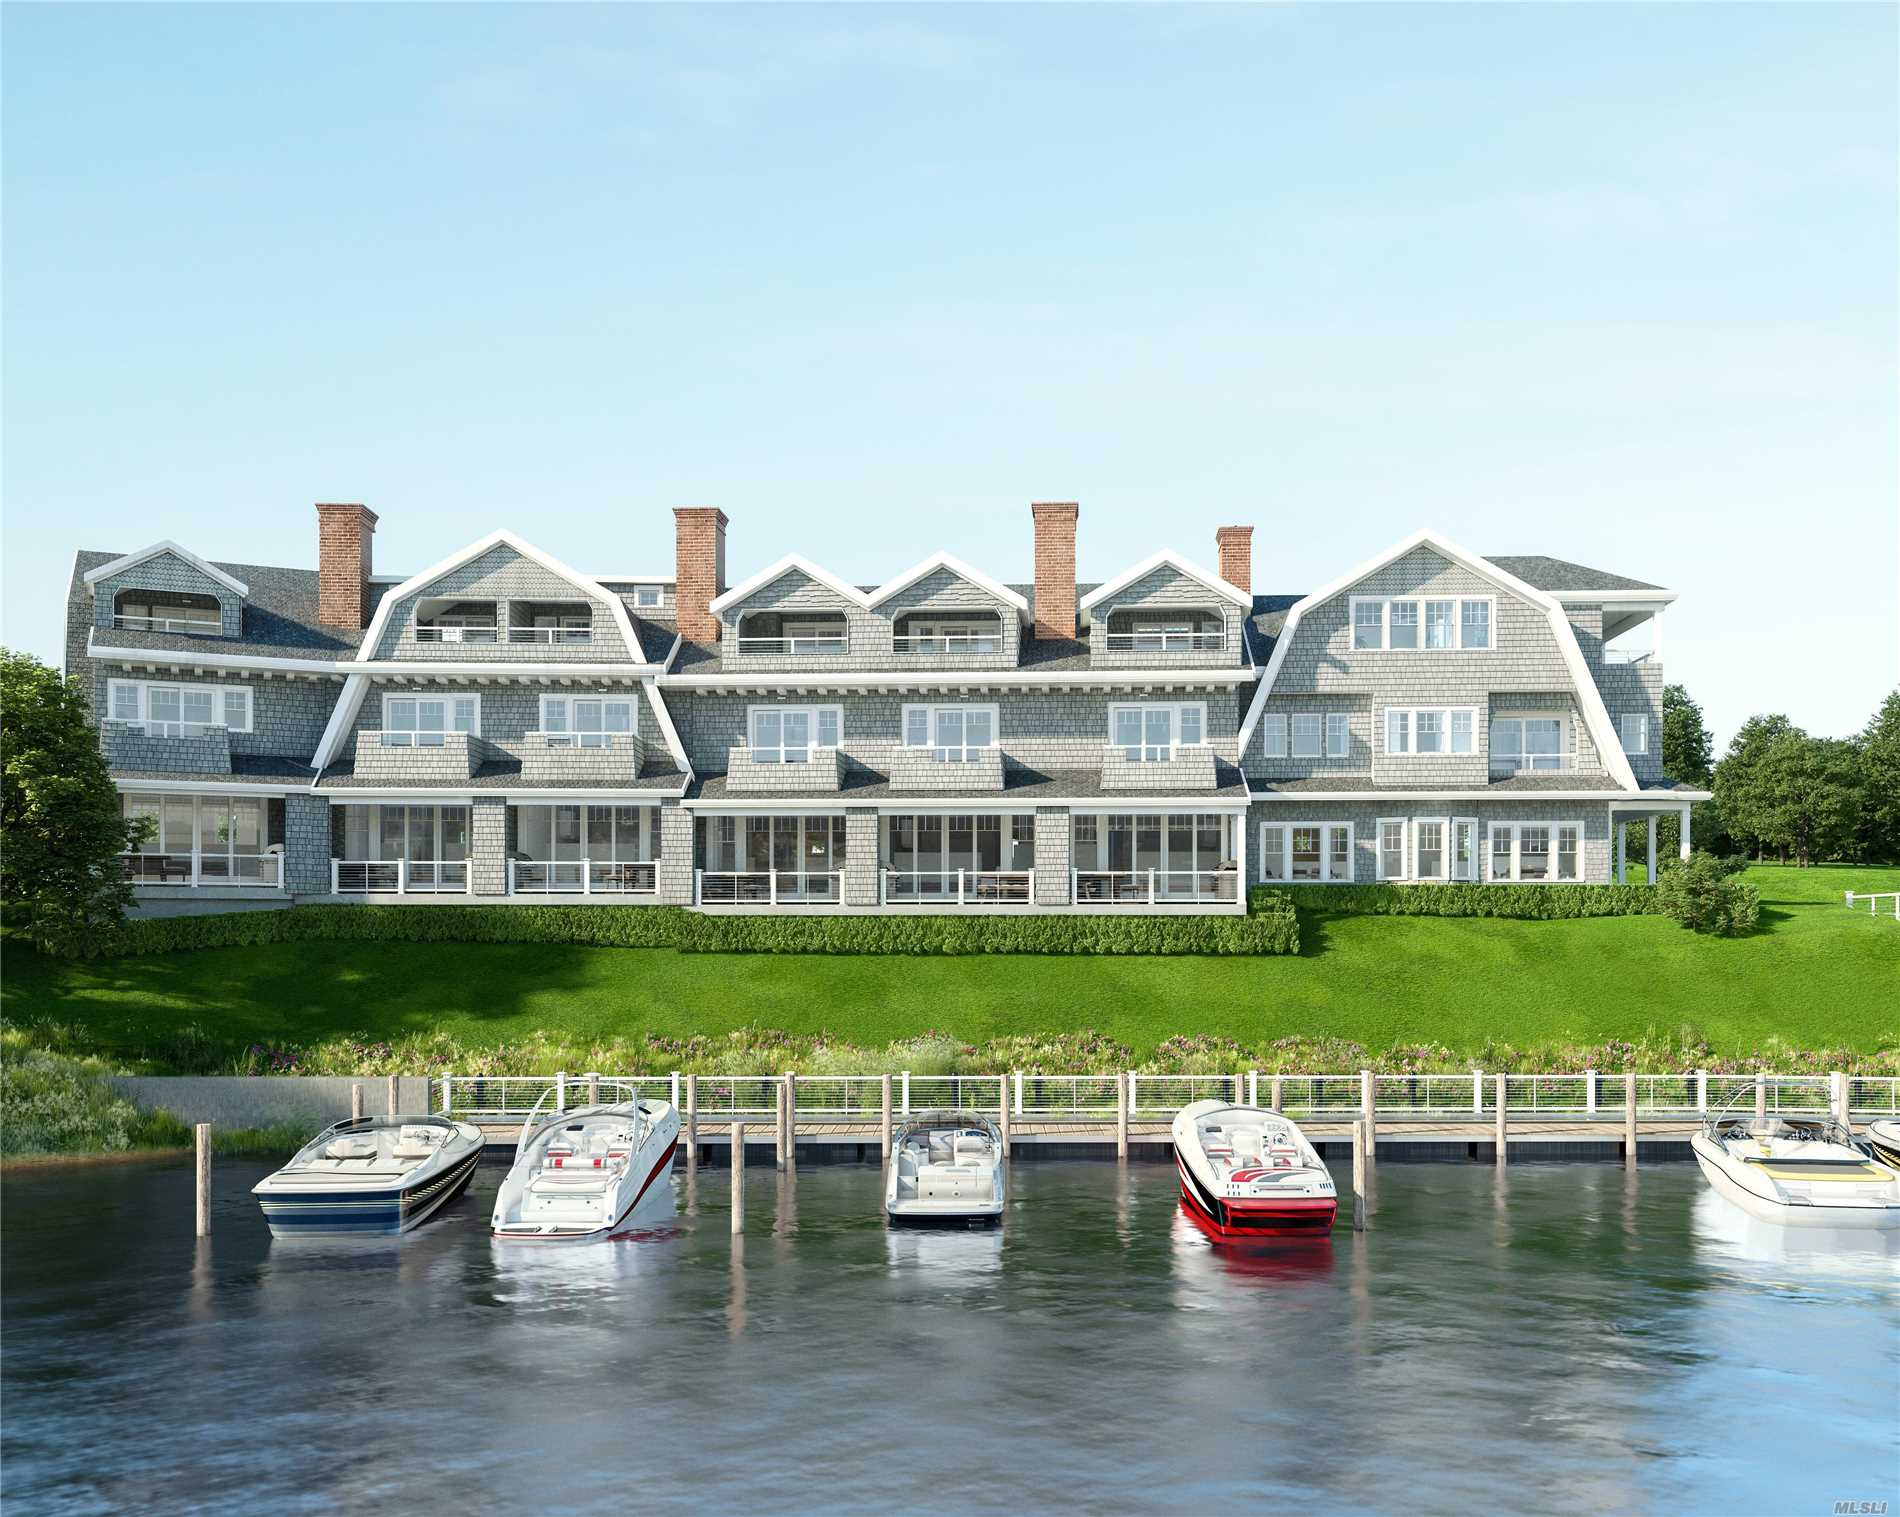 Property for sale at 41 Old Boathouse Lane # 305, Hampton Bays NY 11946, Hampton Bays,  New York 11946